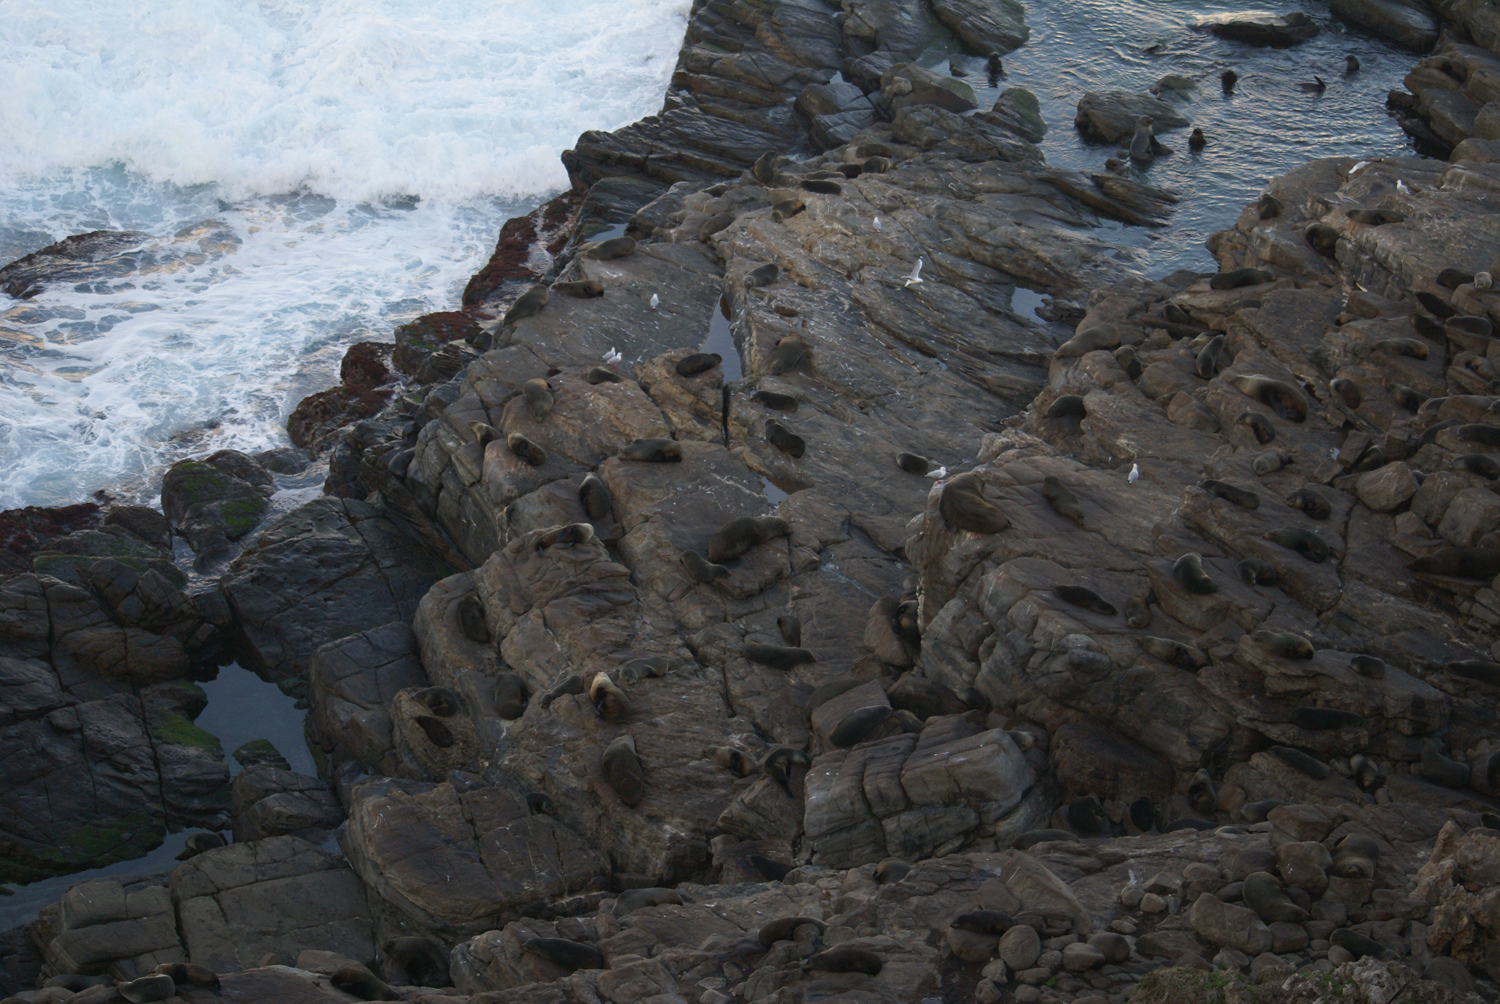 Fur seal colony near Admiral's arch